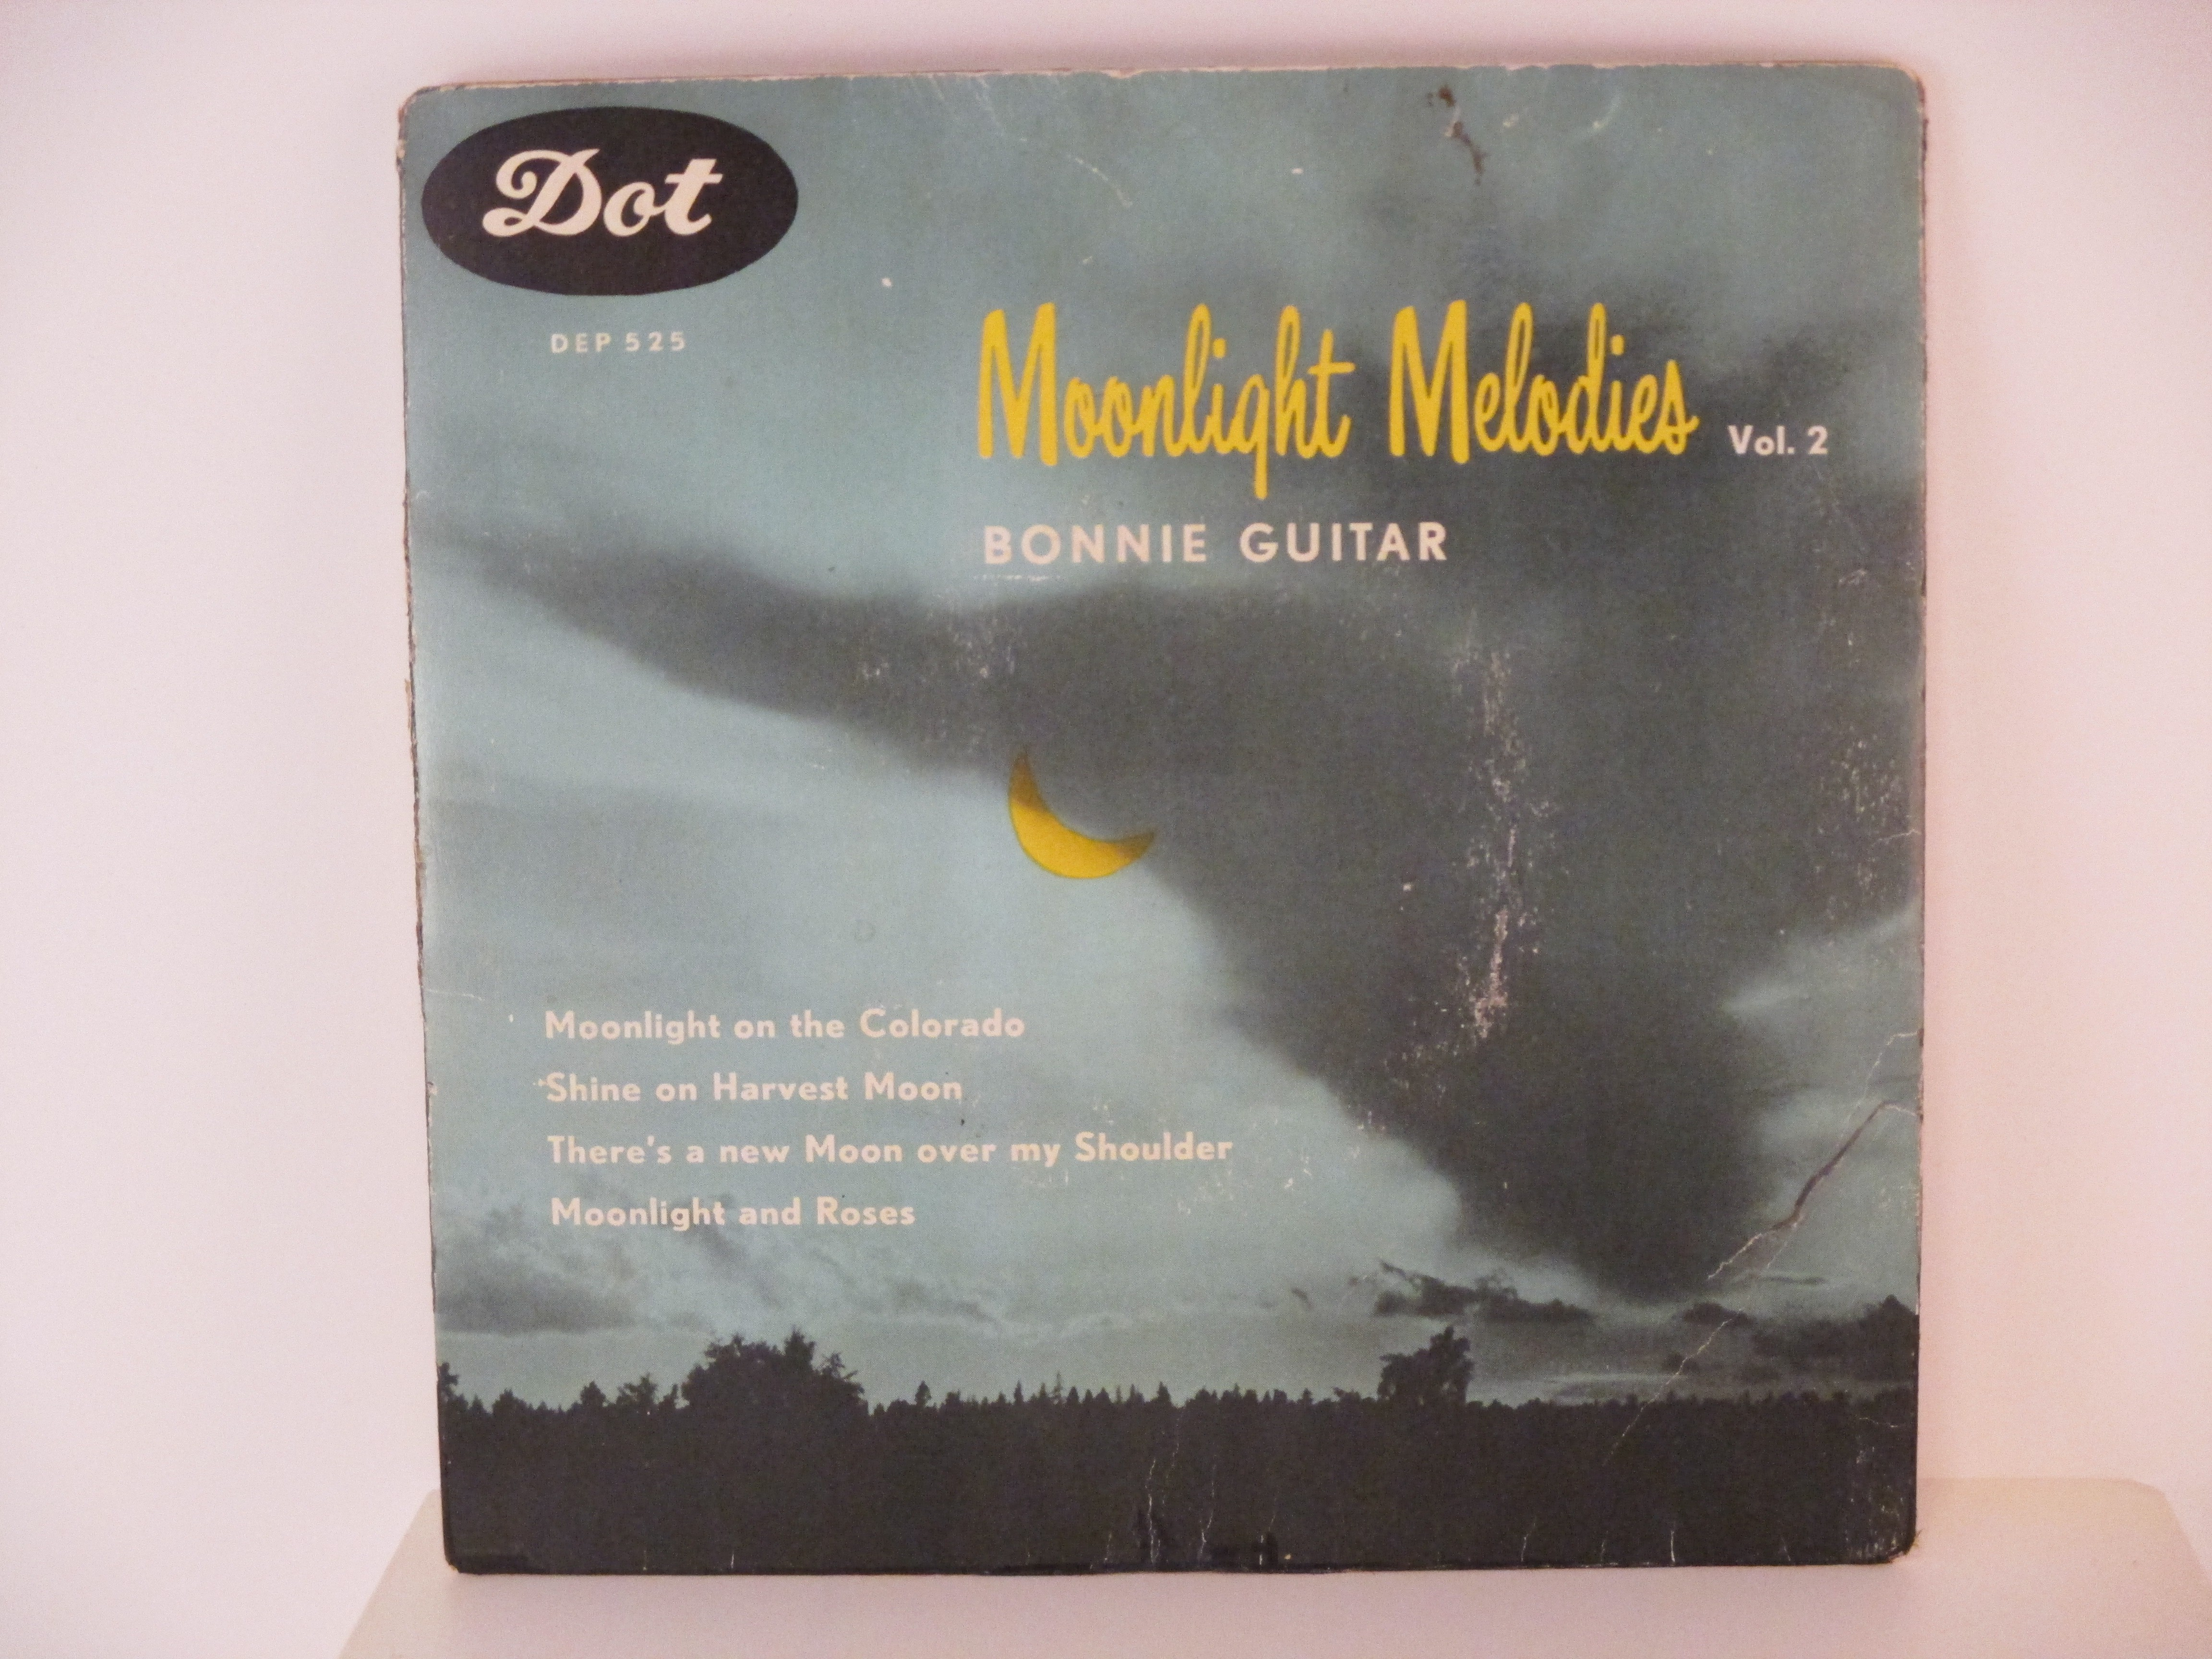 BONNIE GUITAR : (EP) Moonlight on the Colorado / Shine on harvest moon / There's a new moon over my shoulder / Moonlight and roses